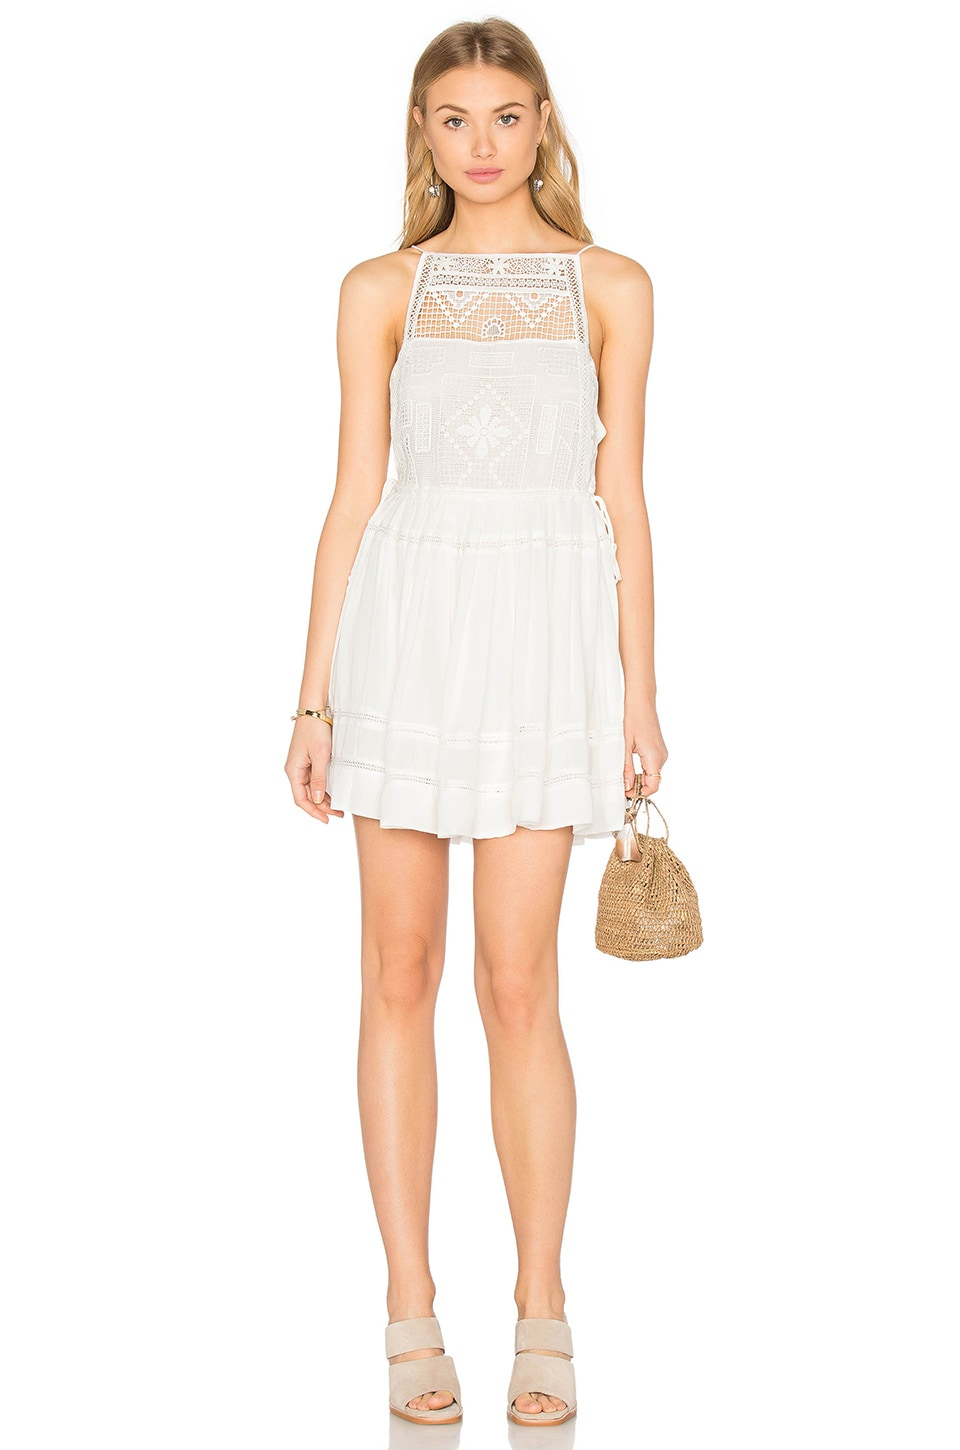 Free People Emily Dress in White